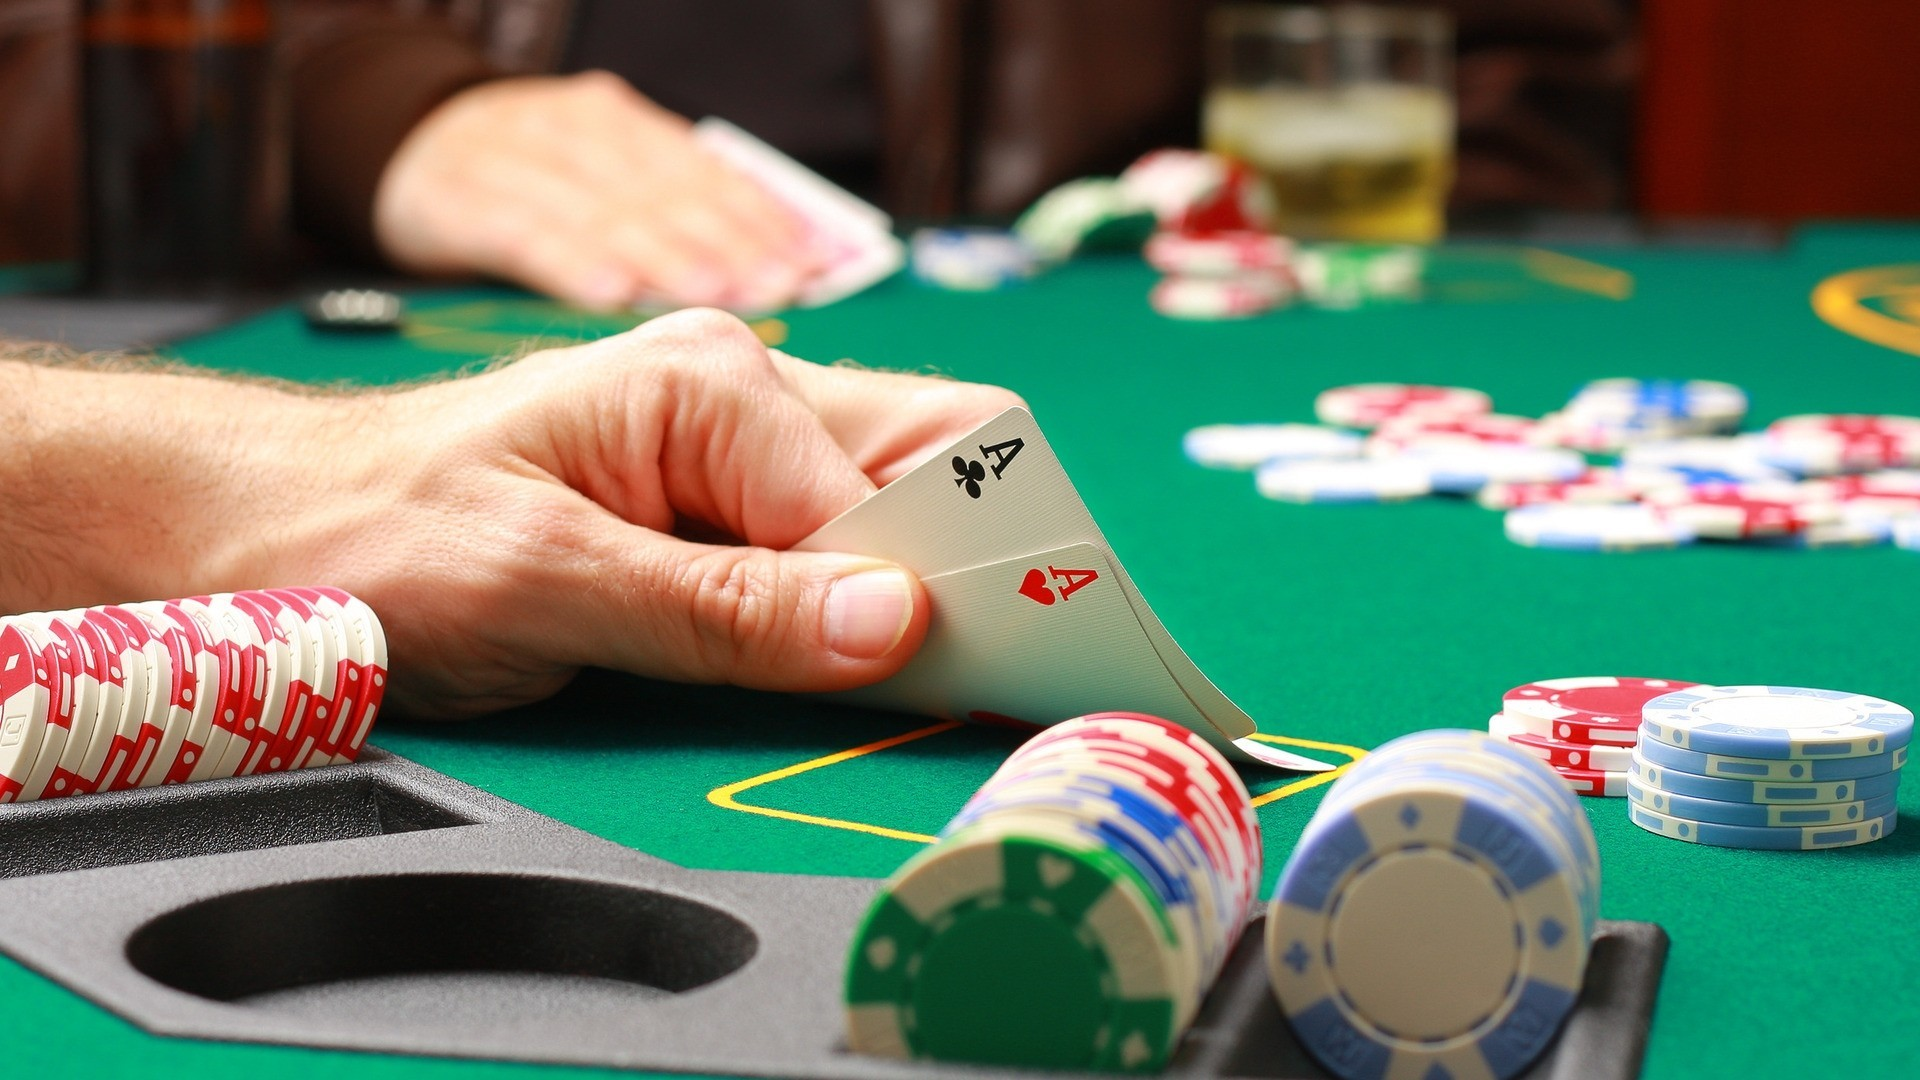 10 Rules About Gambling Casino Meant To Be Damaged